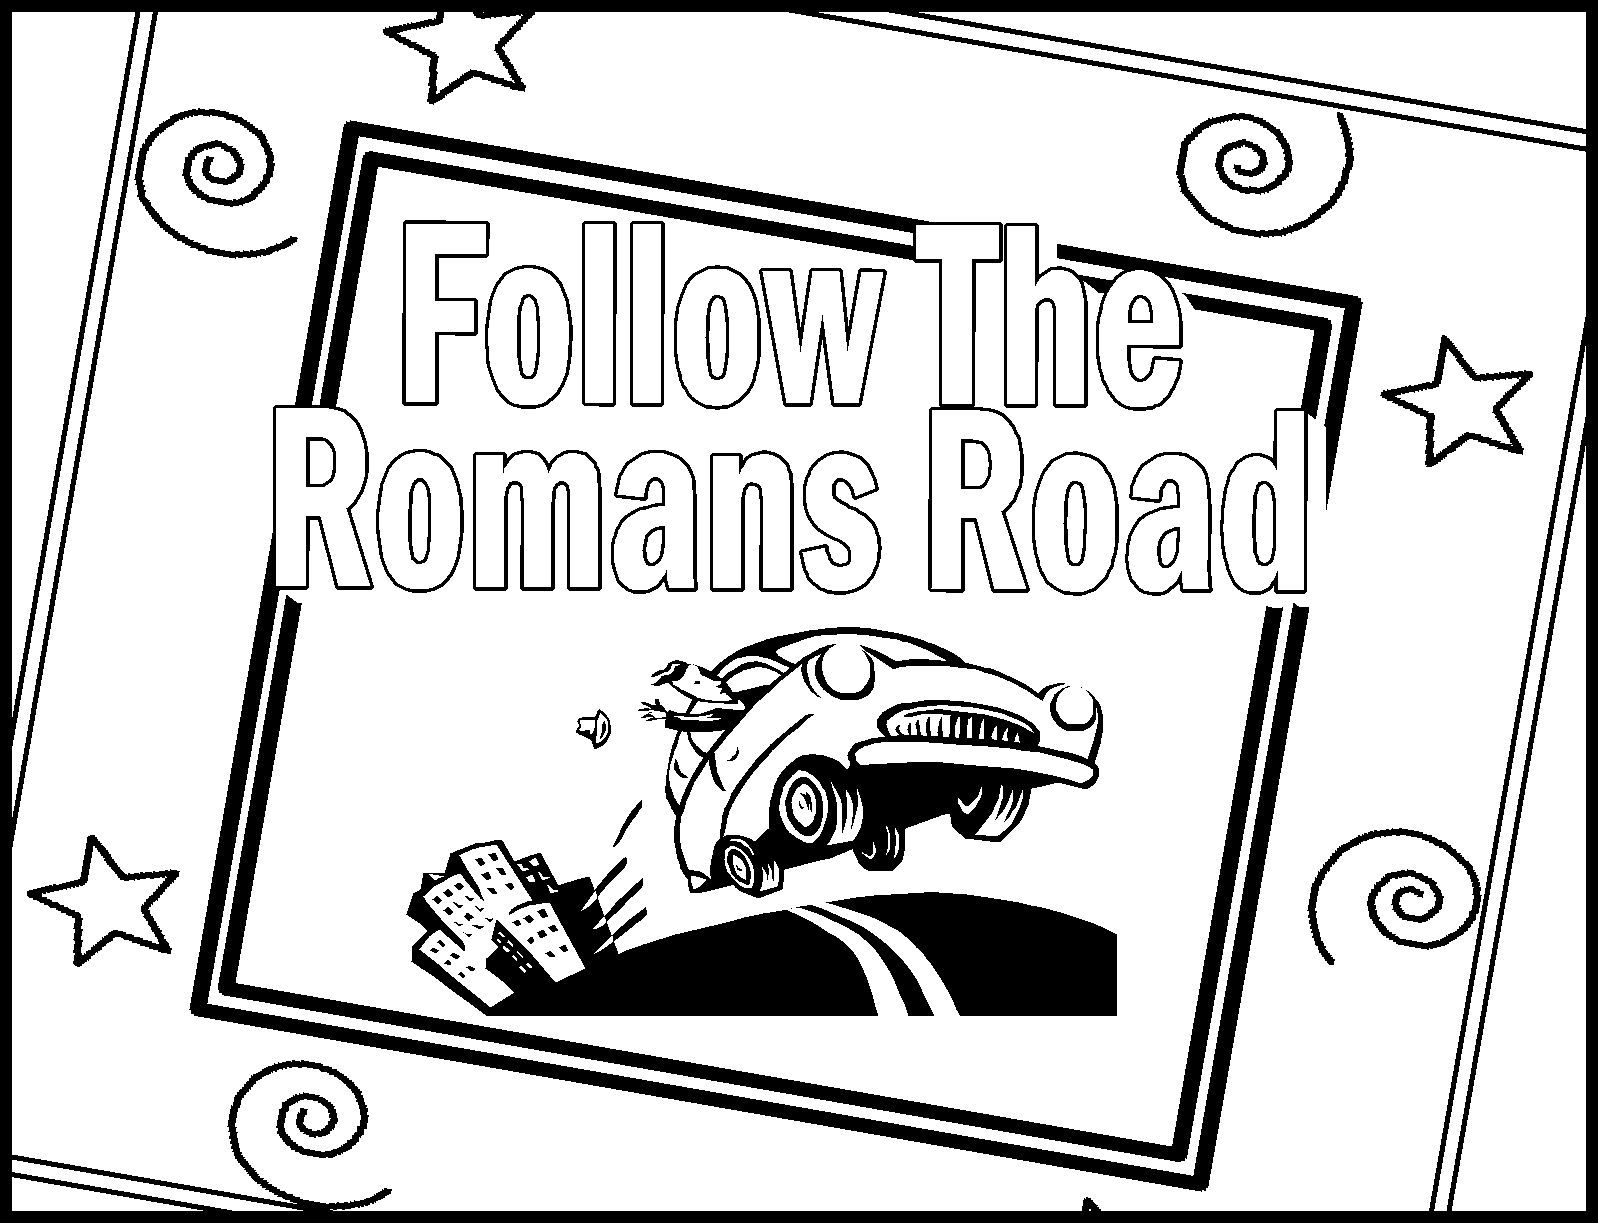 Coloring pages for preschoolers on salavation - Childrens Gems In My Treasure Box Romans Road Coloring Sheets